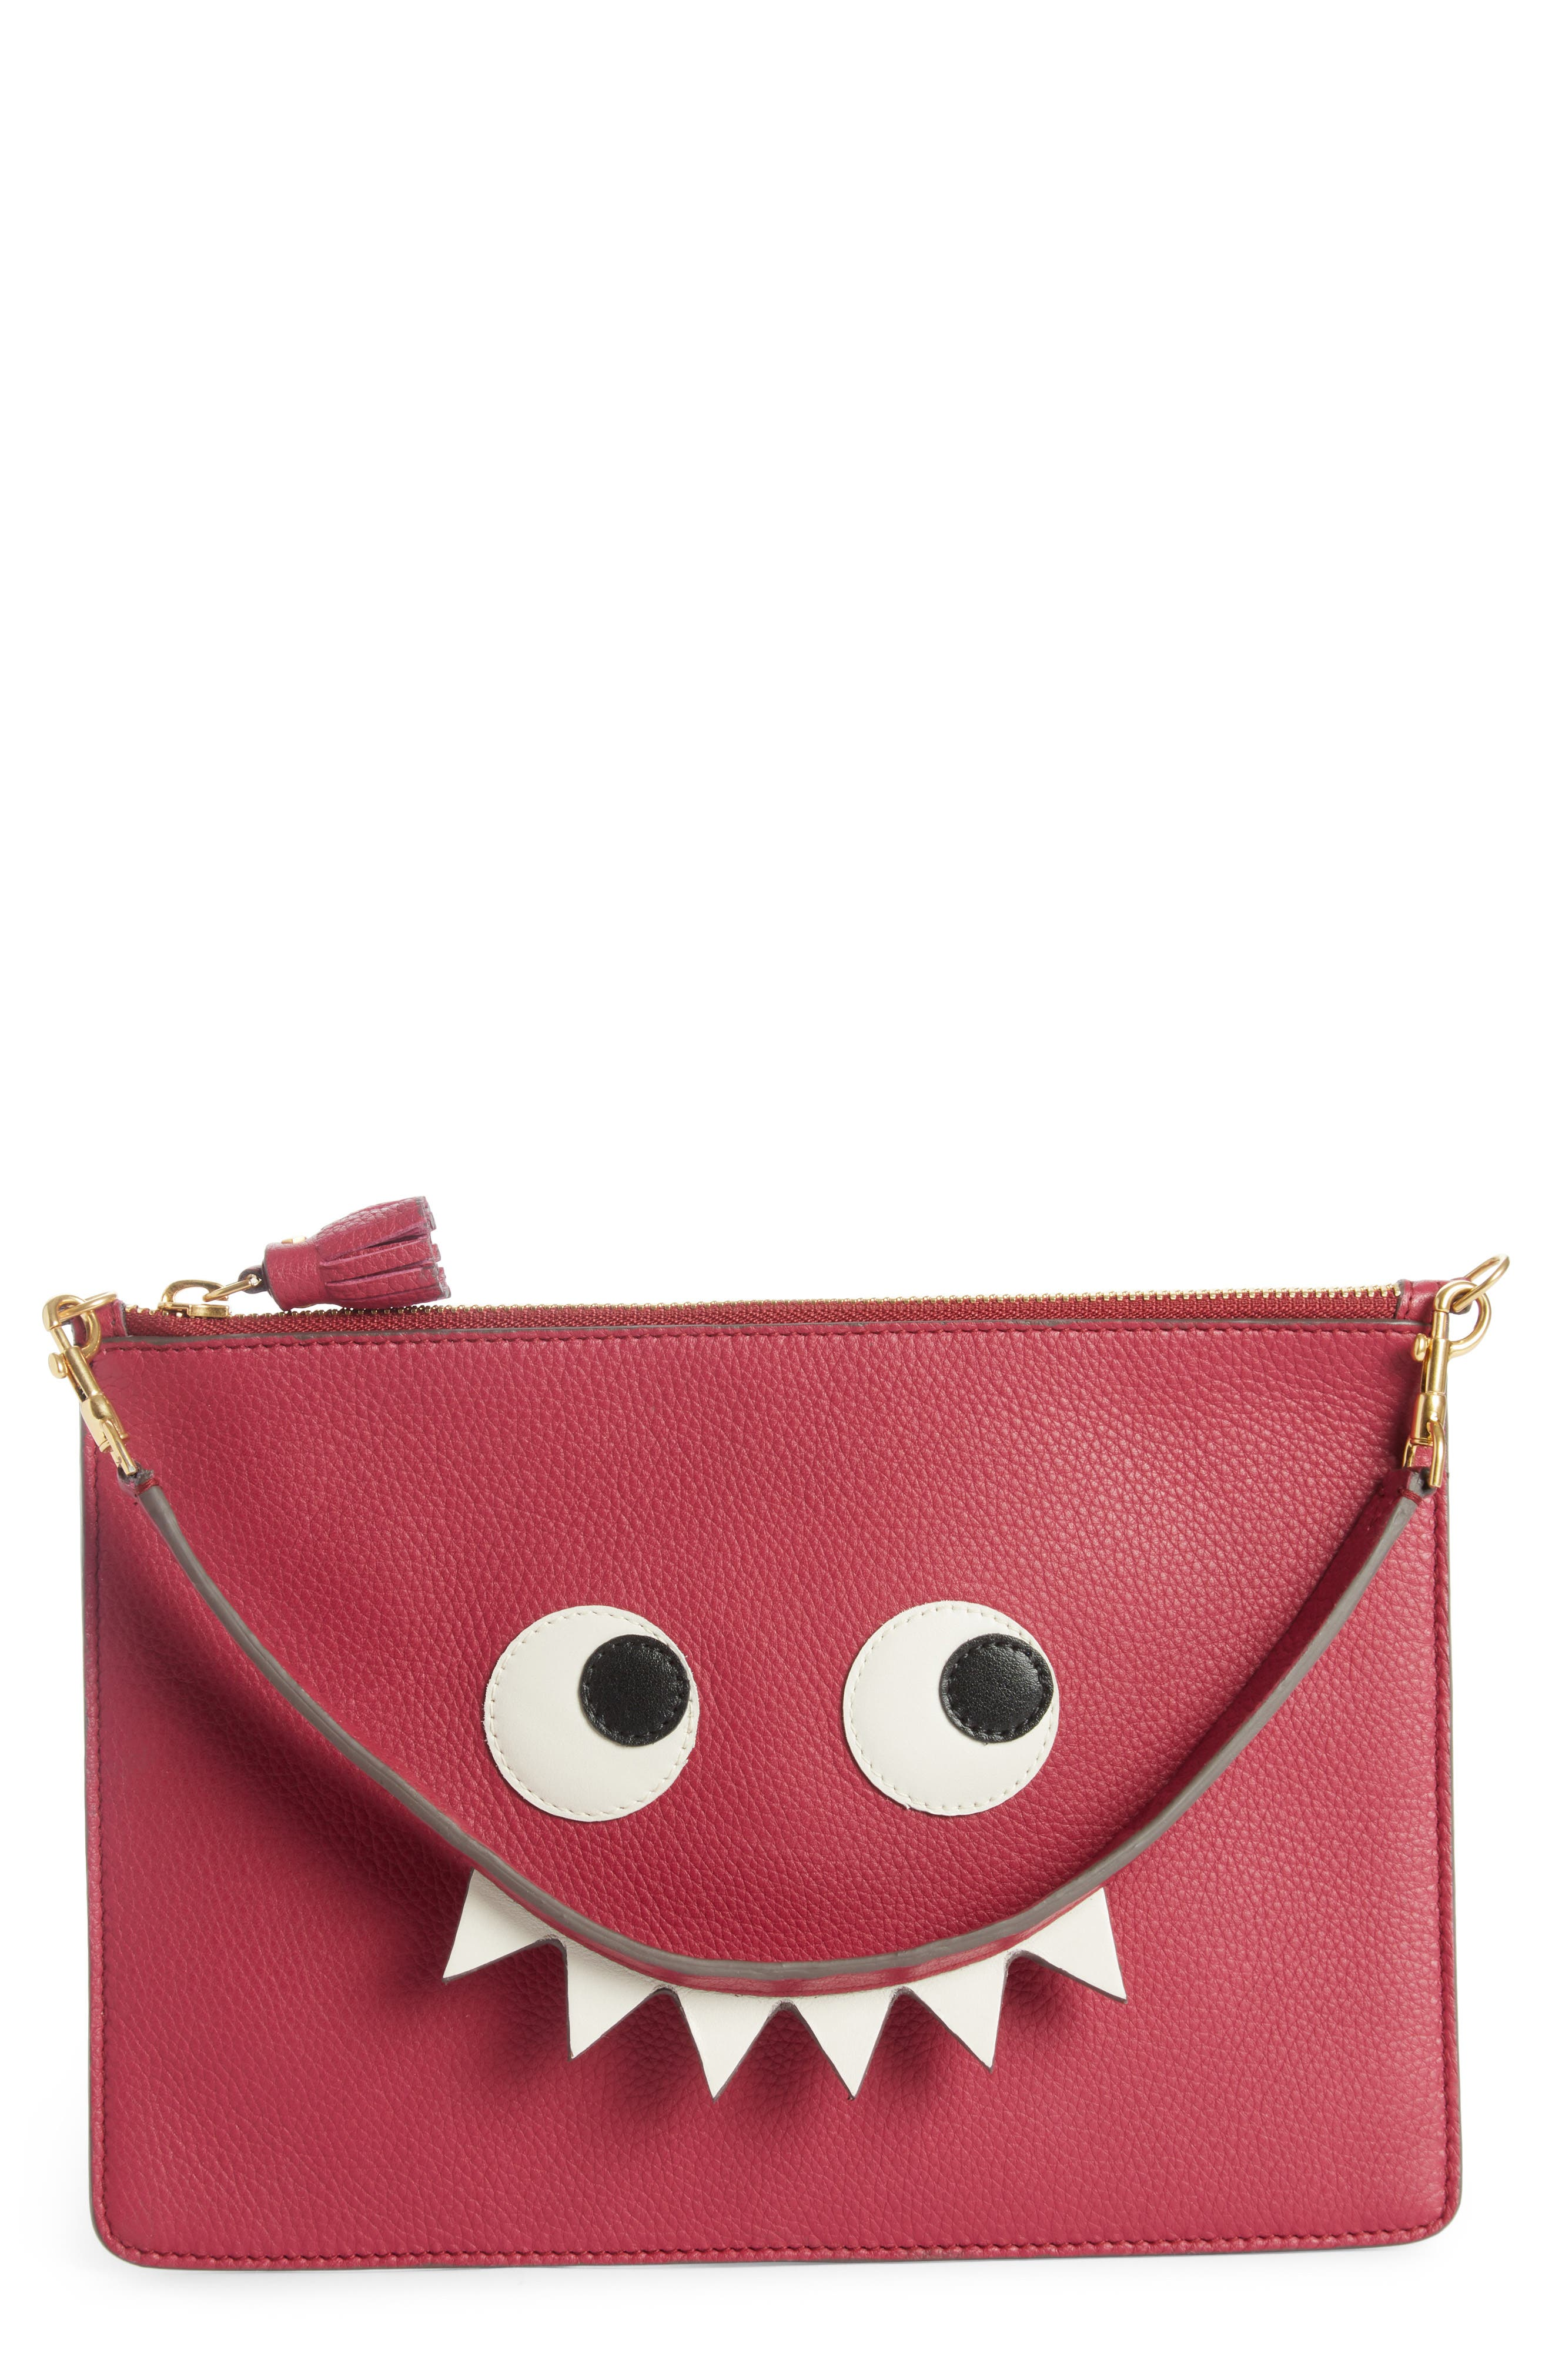 Eyes Leather Zip Pouch,                             Main thumbnail 1, color,                             600